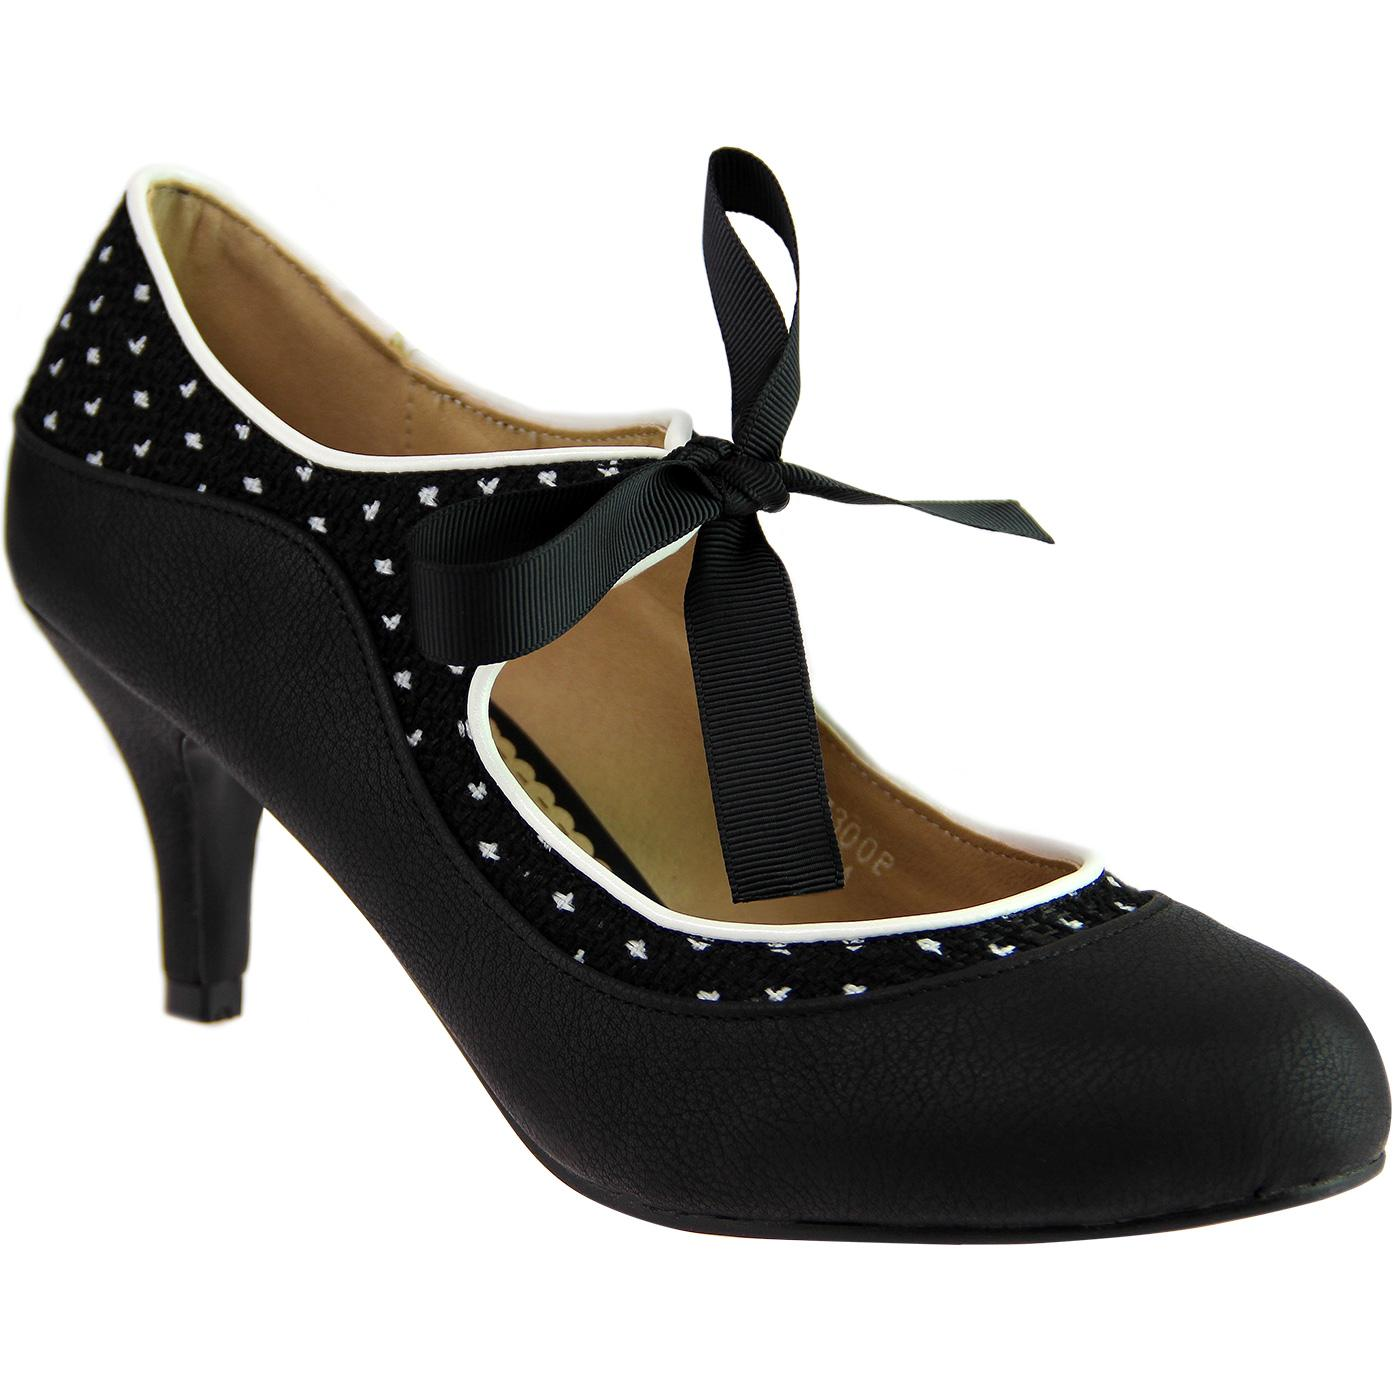 Jeanie LULU HUN Black and White Polka Dot Heels